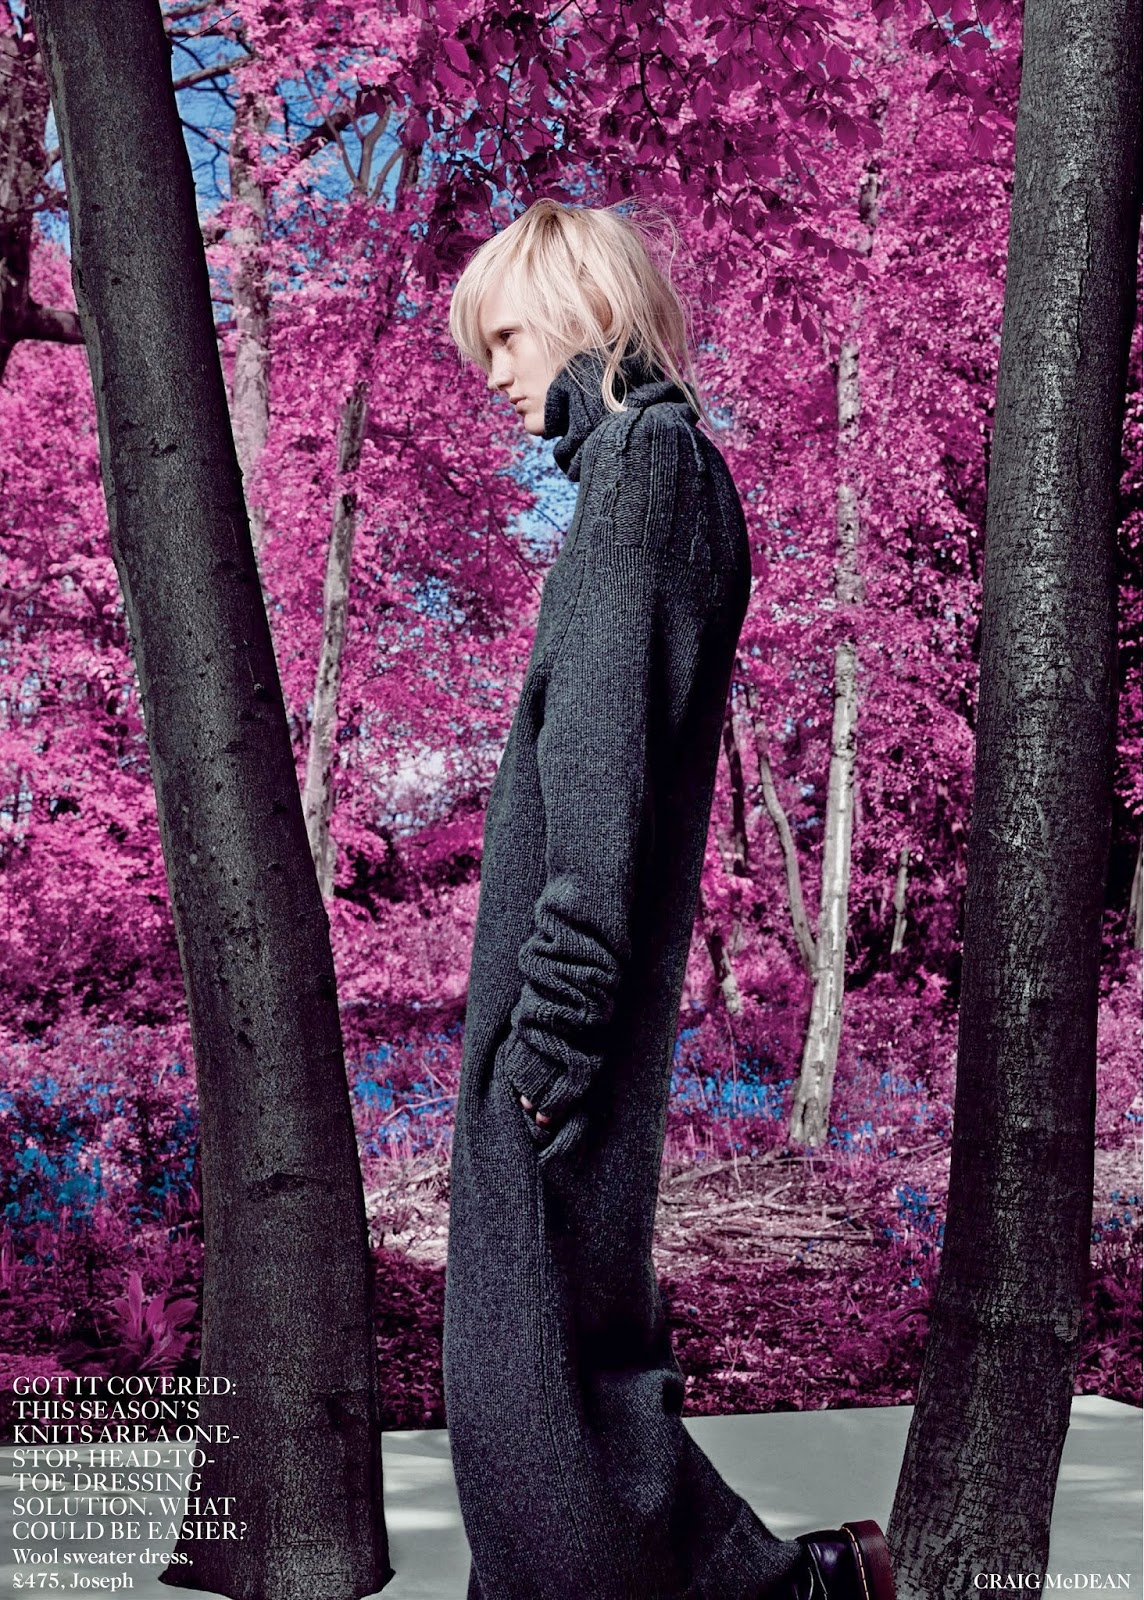 harleth-kuusik-maja-salamon-nastya-sten-by-craig-mcdean-for-vogue-uk-september-2014-6